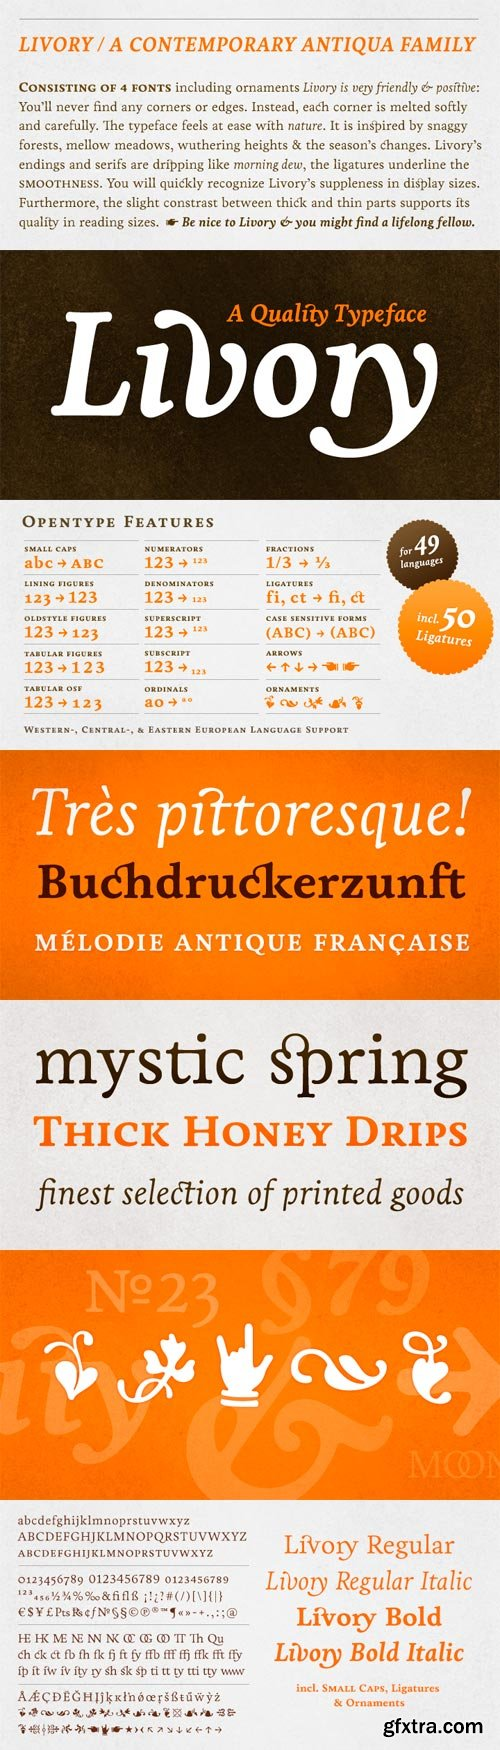 Livory Font Family - 4 Fonts for $129